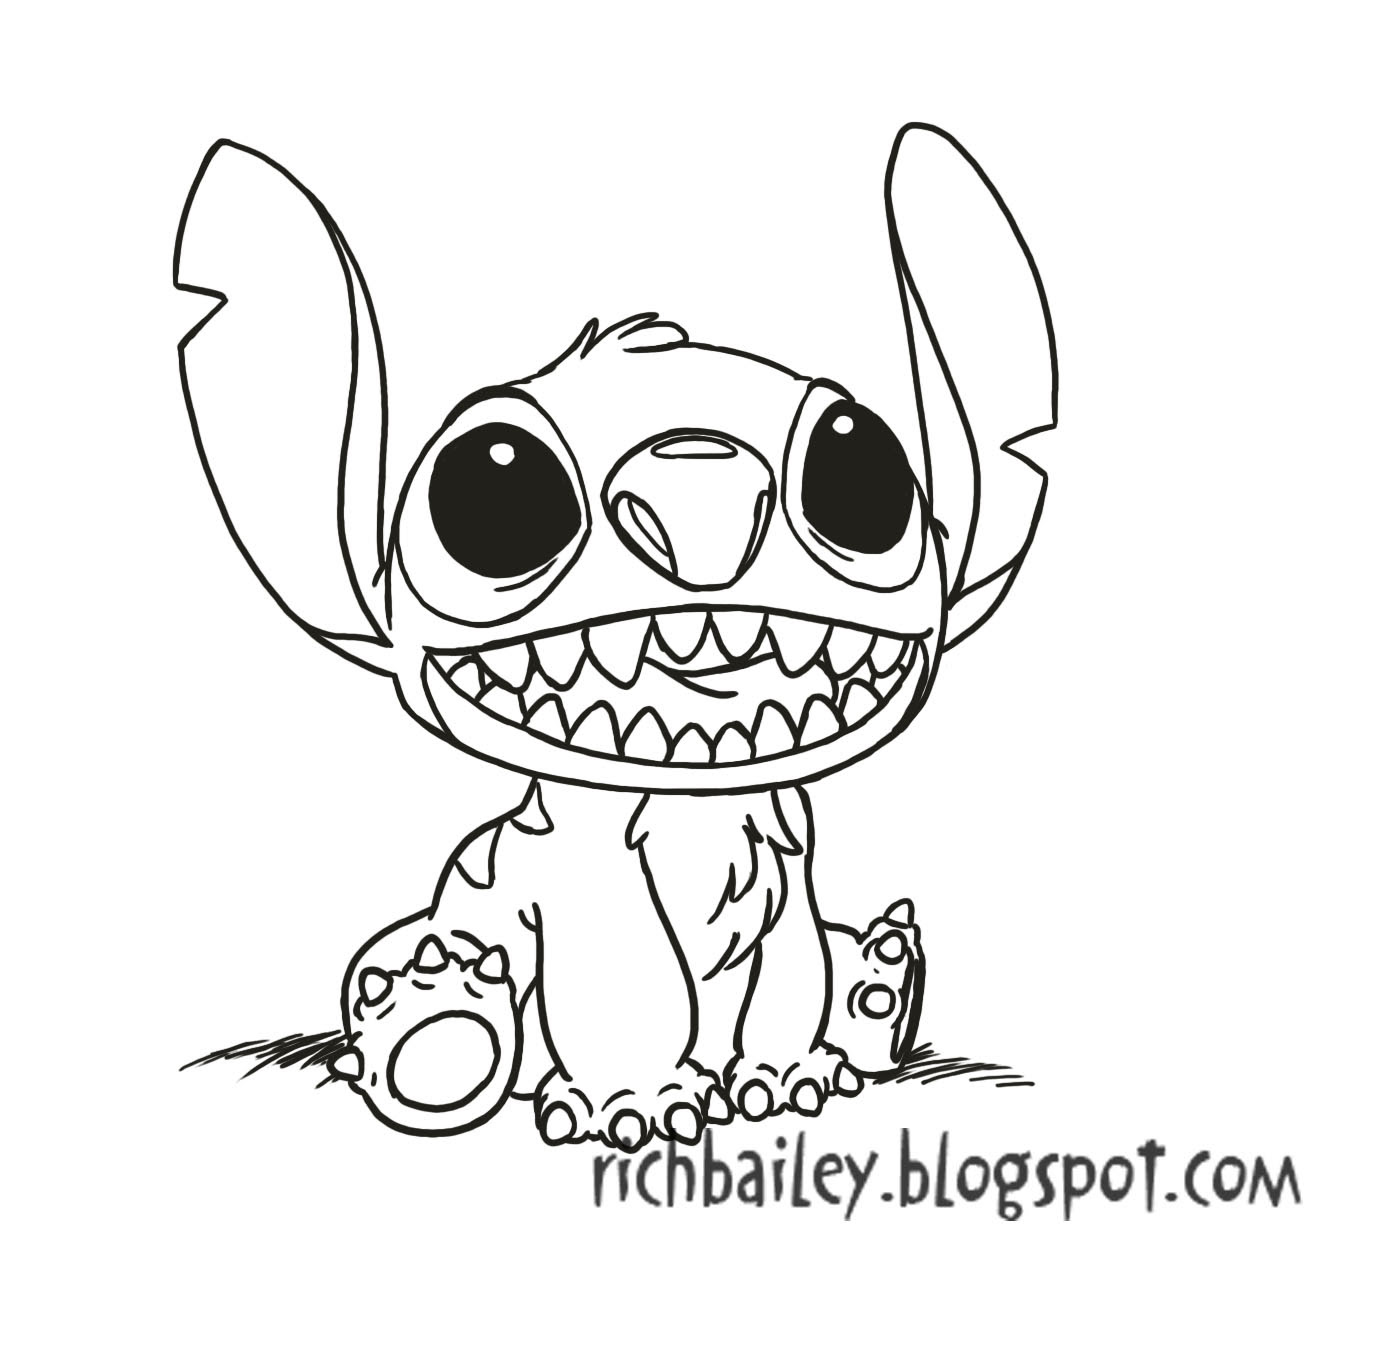 Disney Baby Stitch Coloring Pages | Stitch coloring pages, Disney ... | 1363x1387